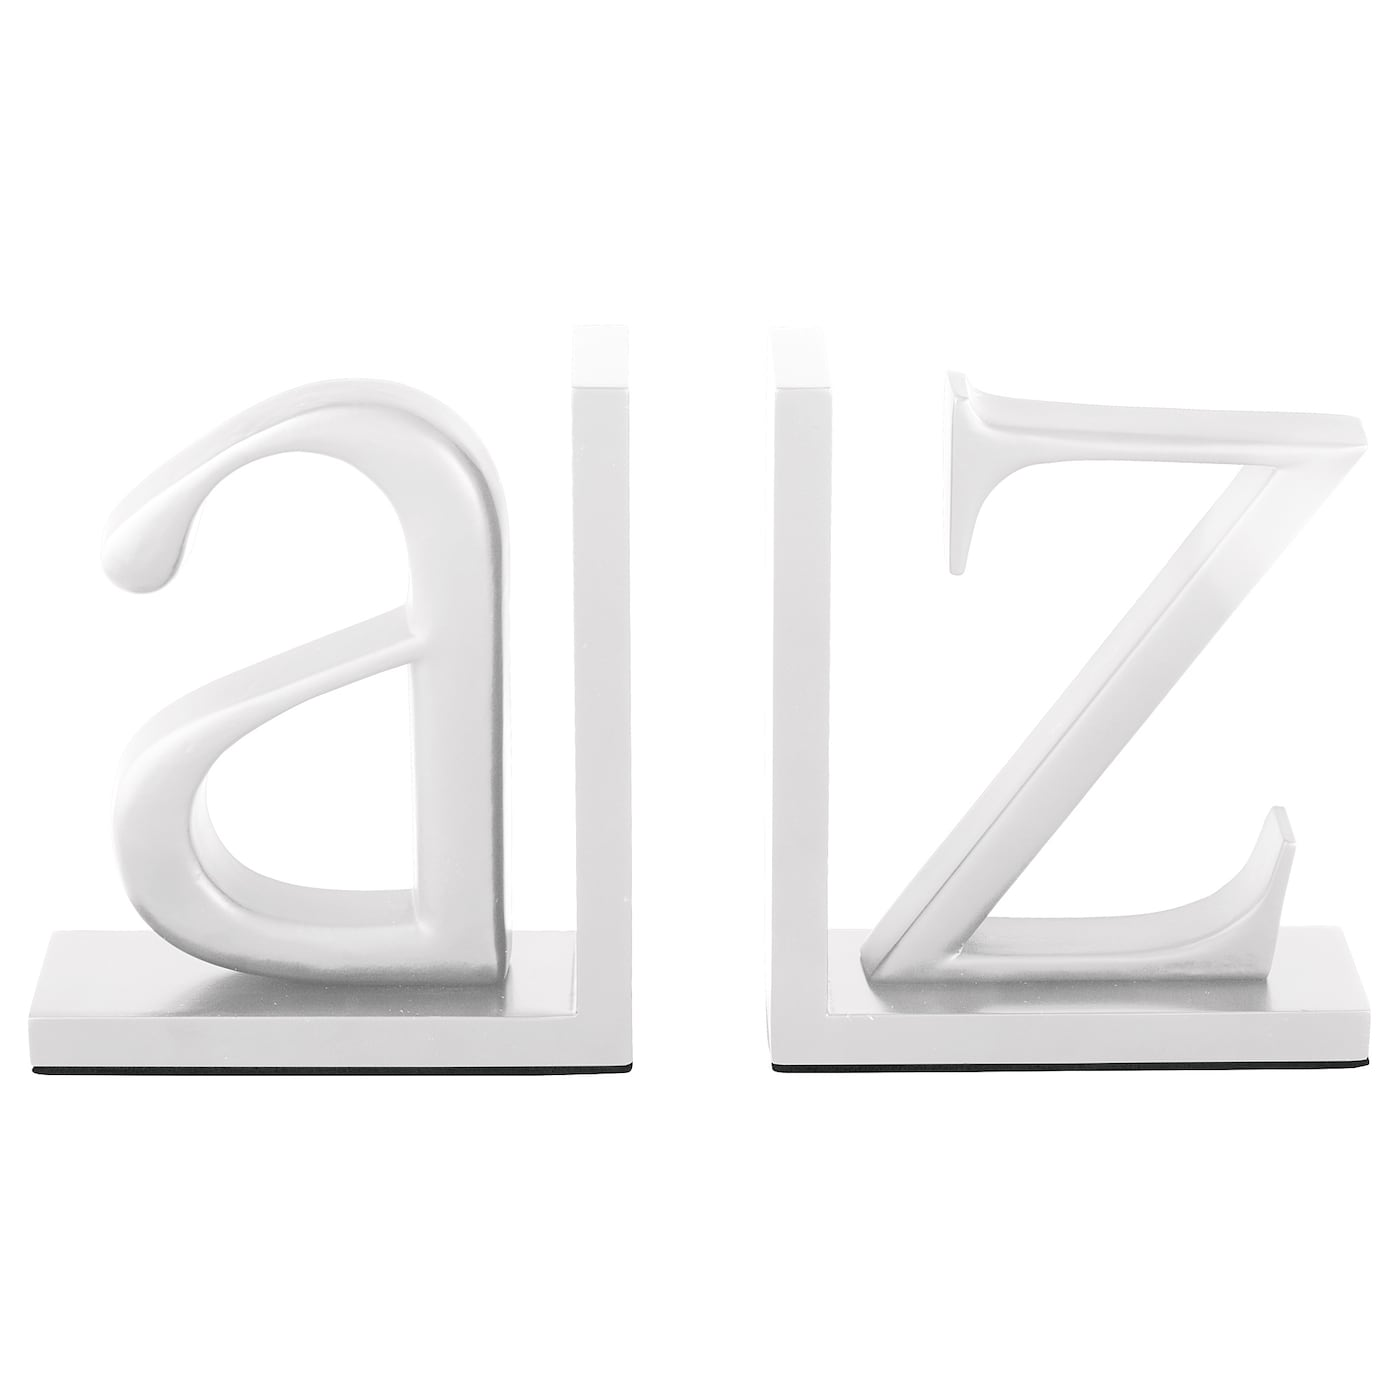 INKILNING Bookend, white